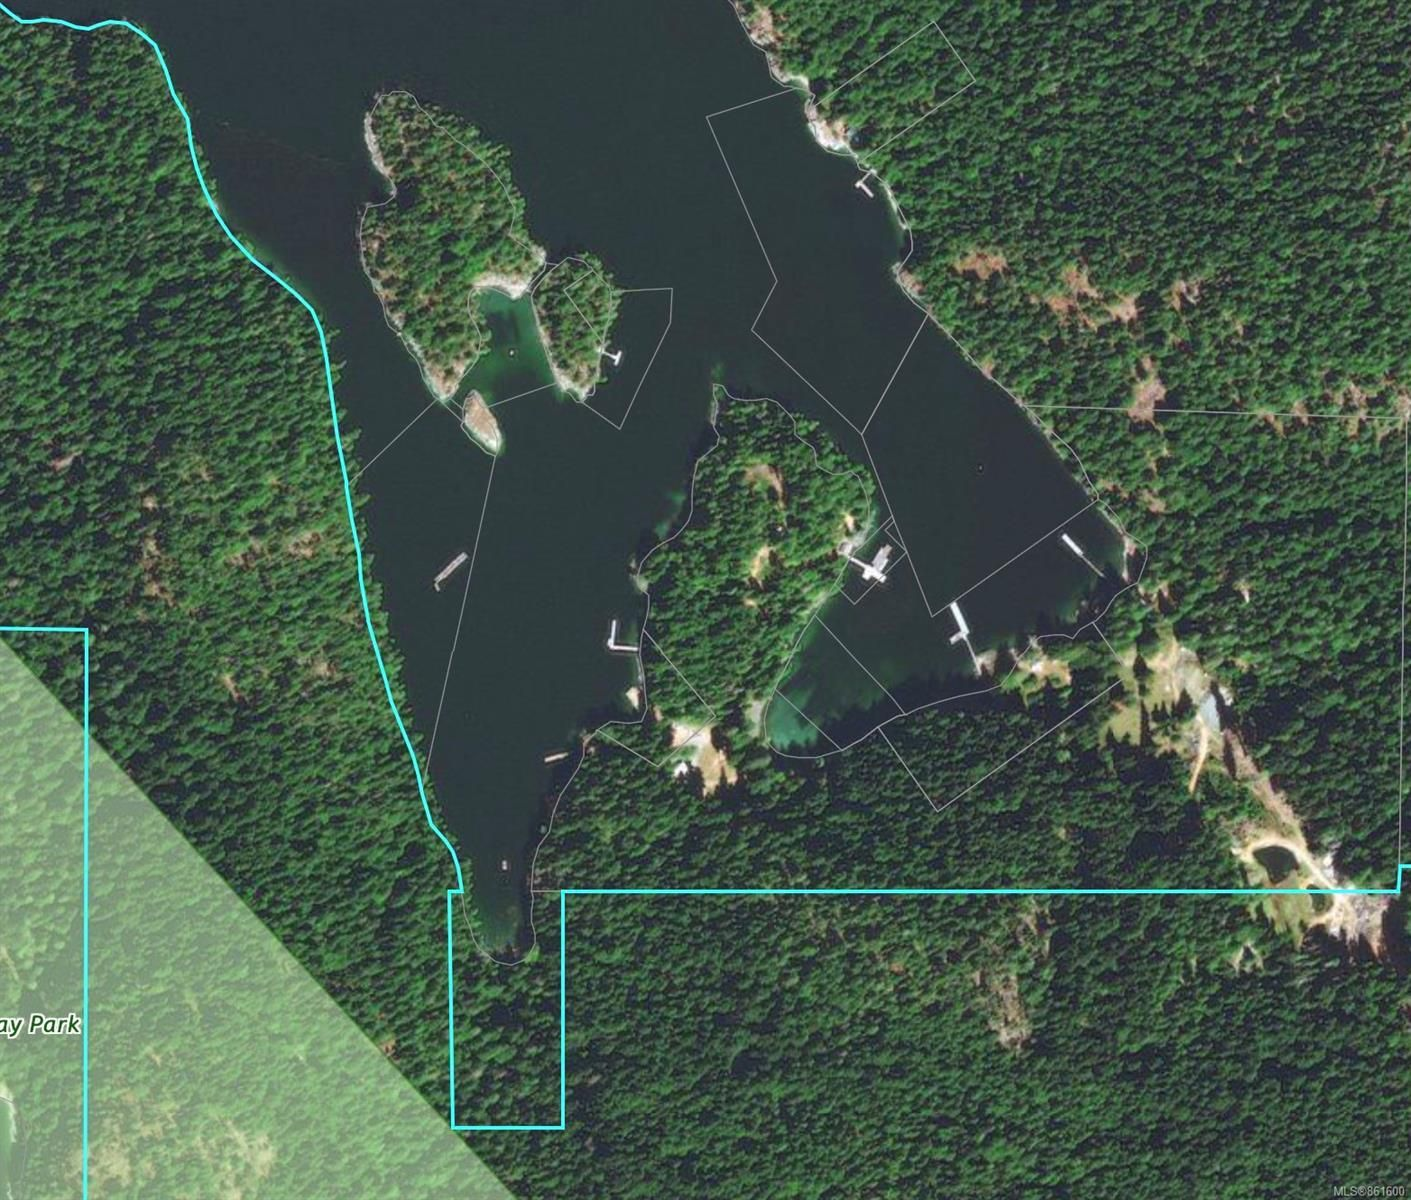 4.1 Acres at the head of the southern most bay in Quartz Bay, DL 1542 surrounded by Crown Provincial Land.